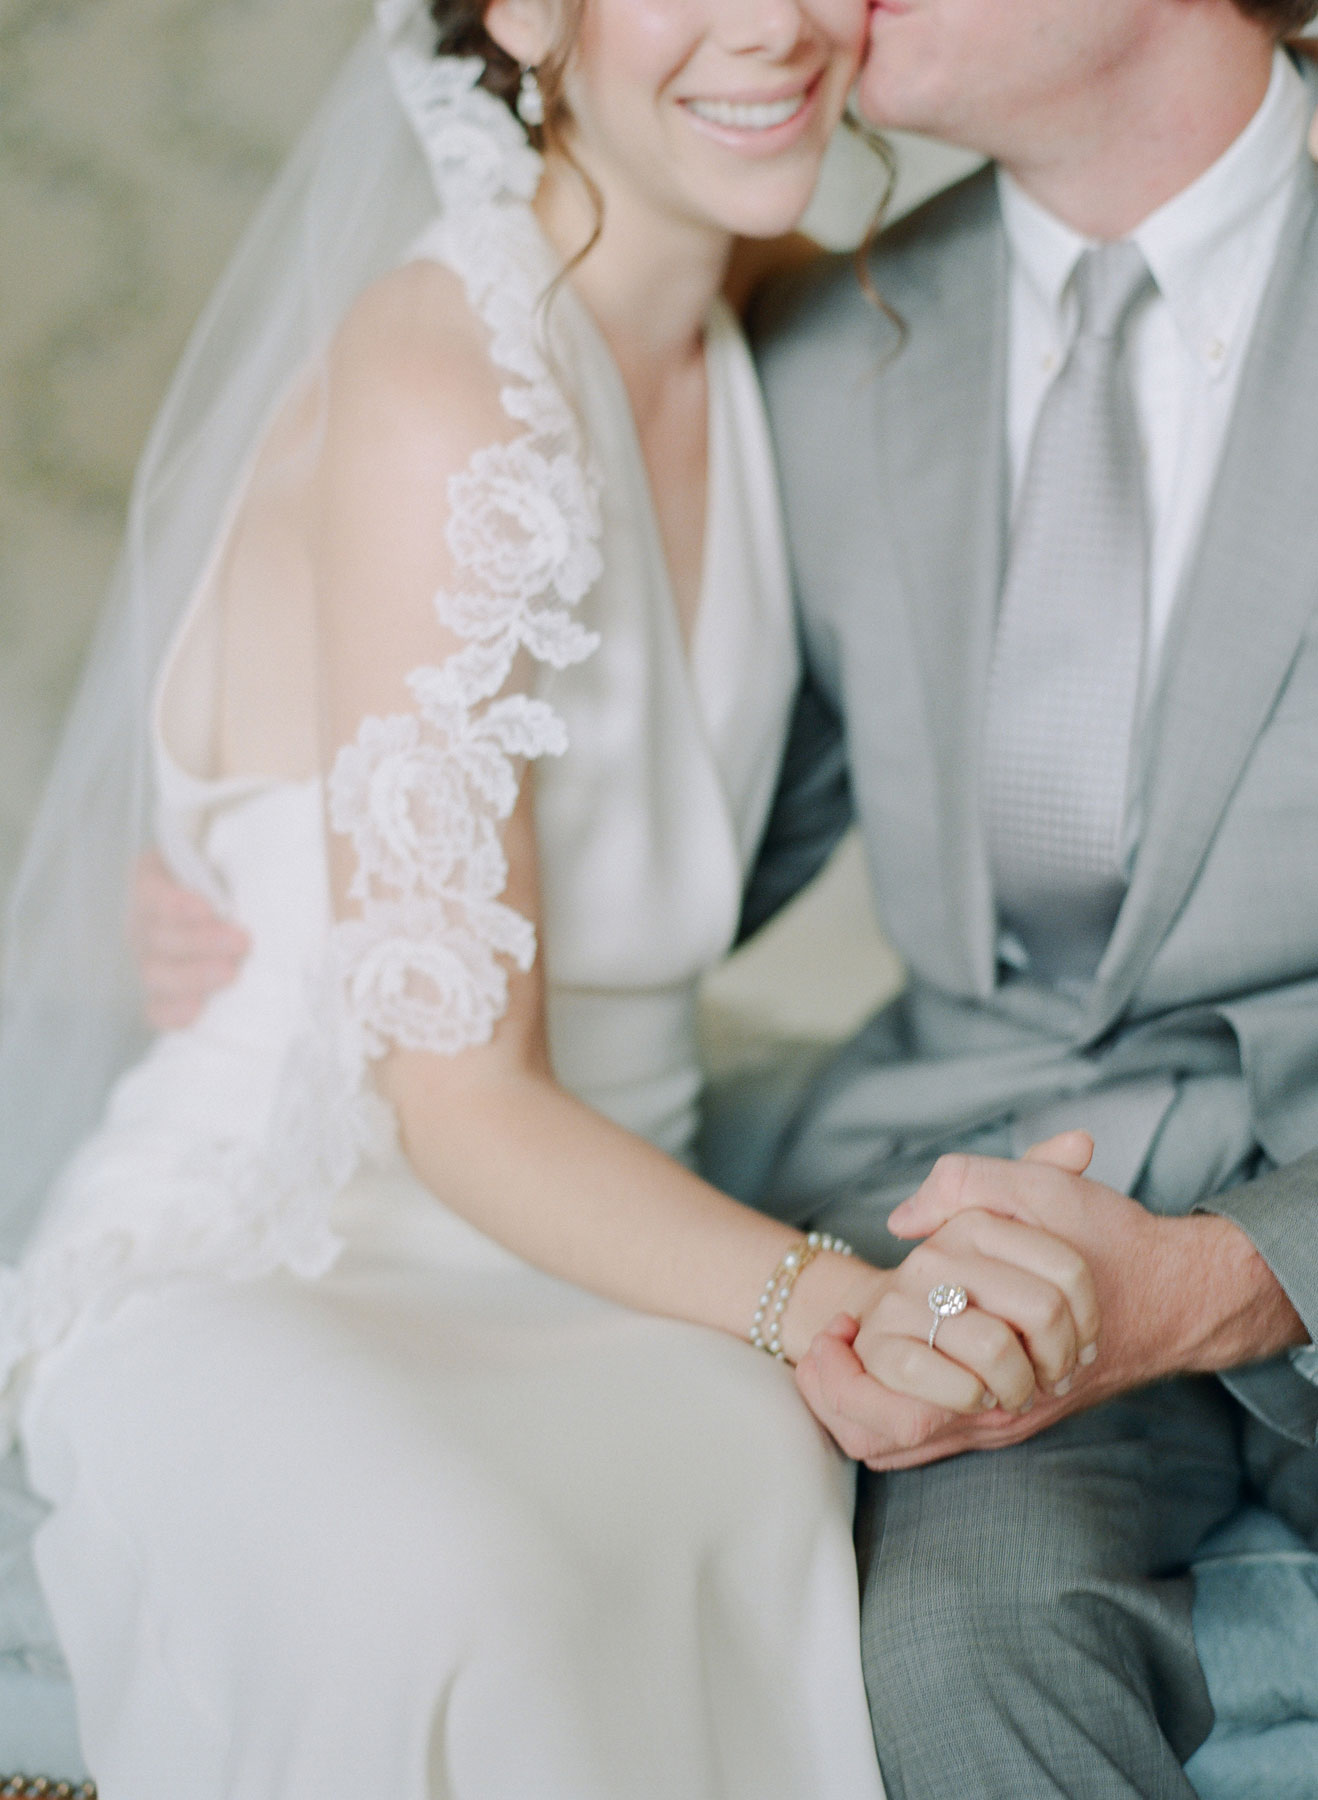 Groom wearing grey suit and tie on wedding day